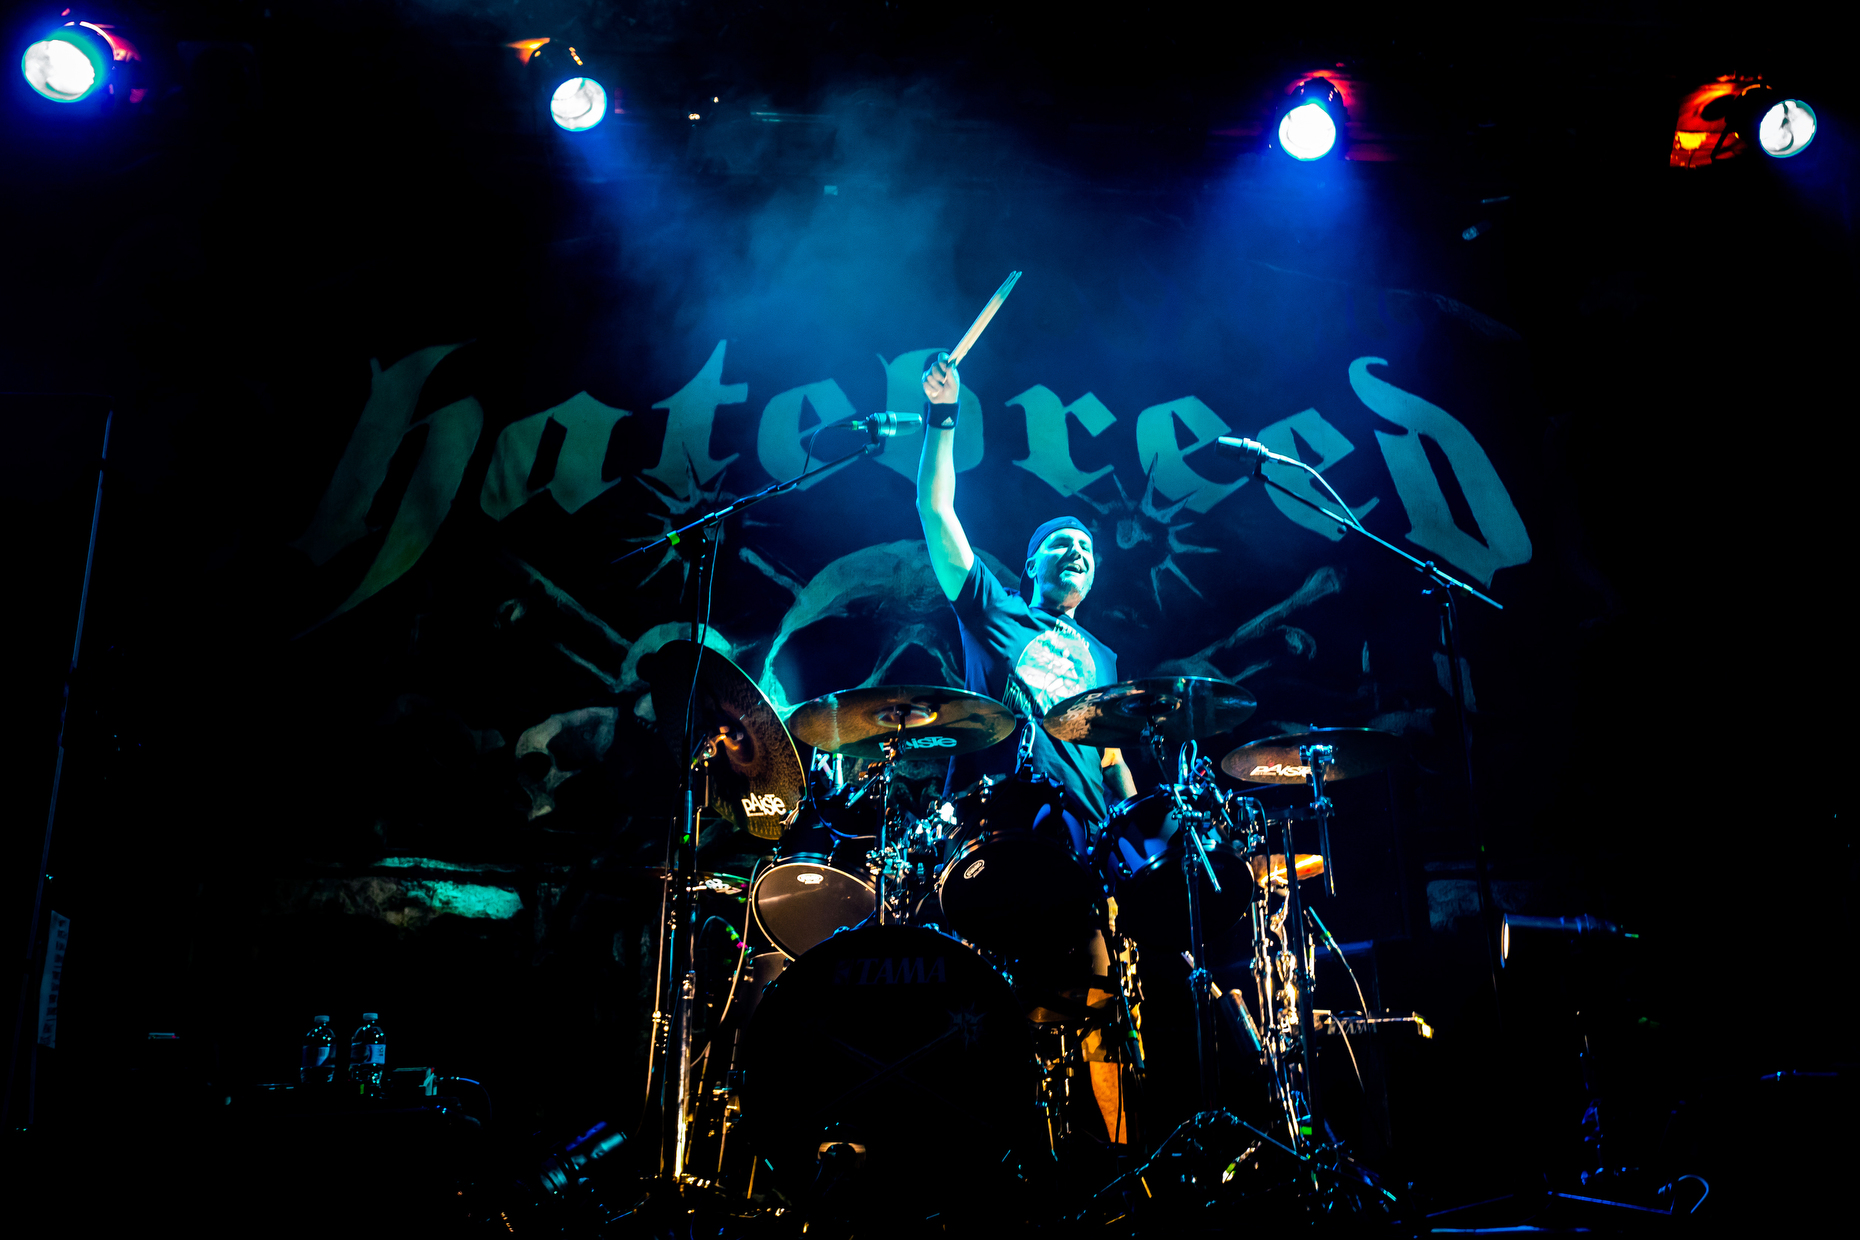 HATEBREED0001.JPG